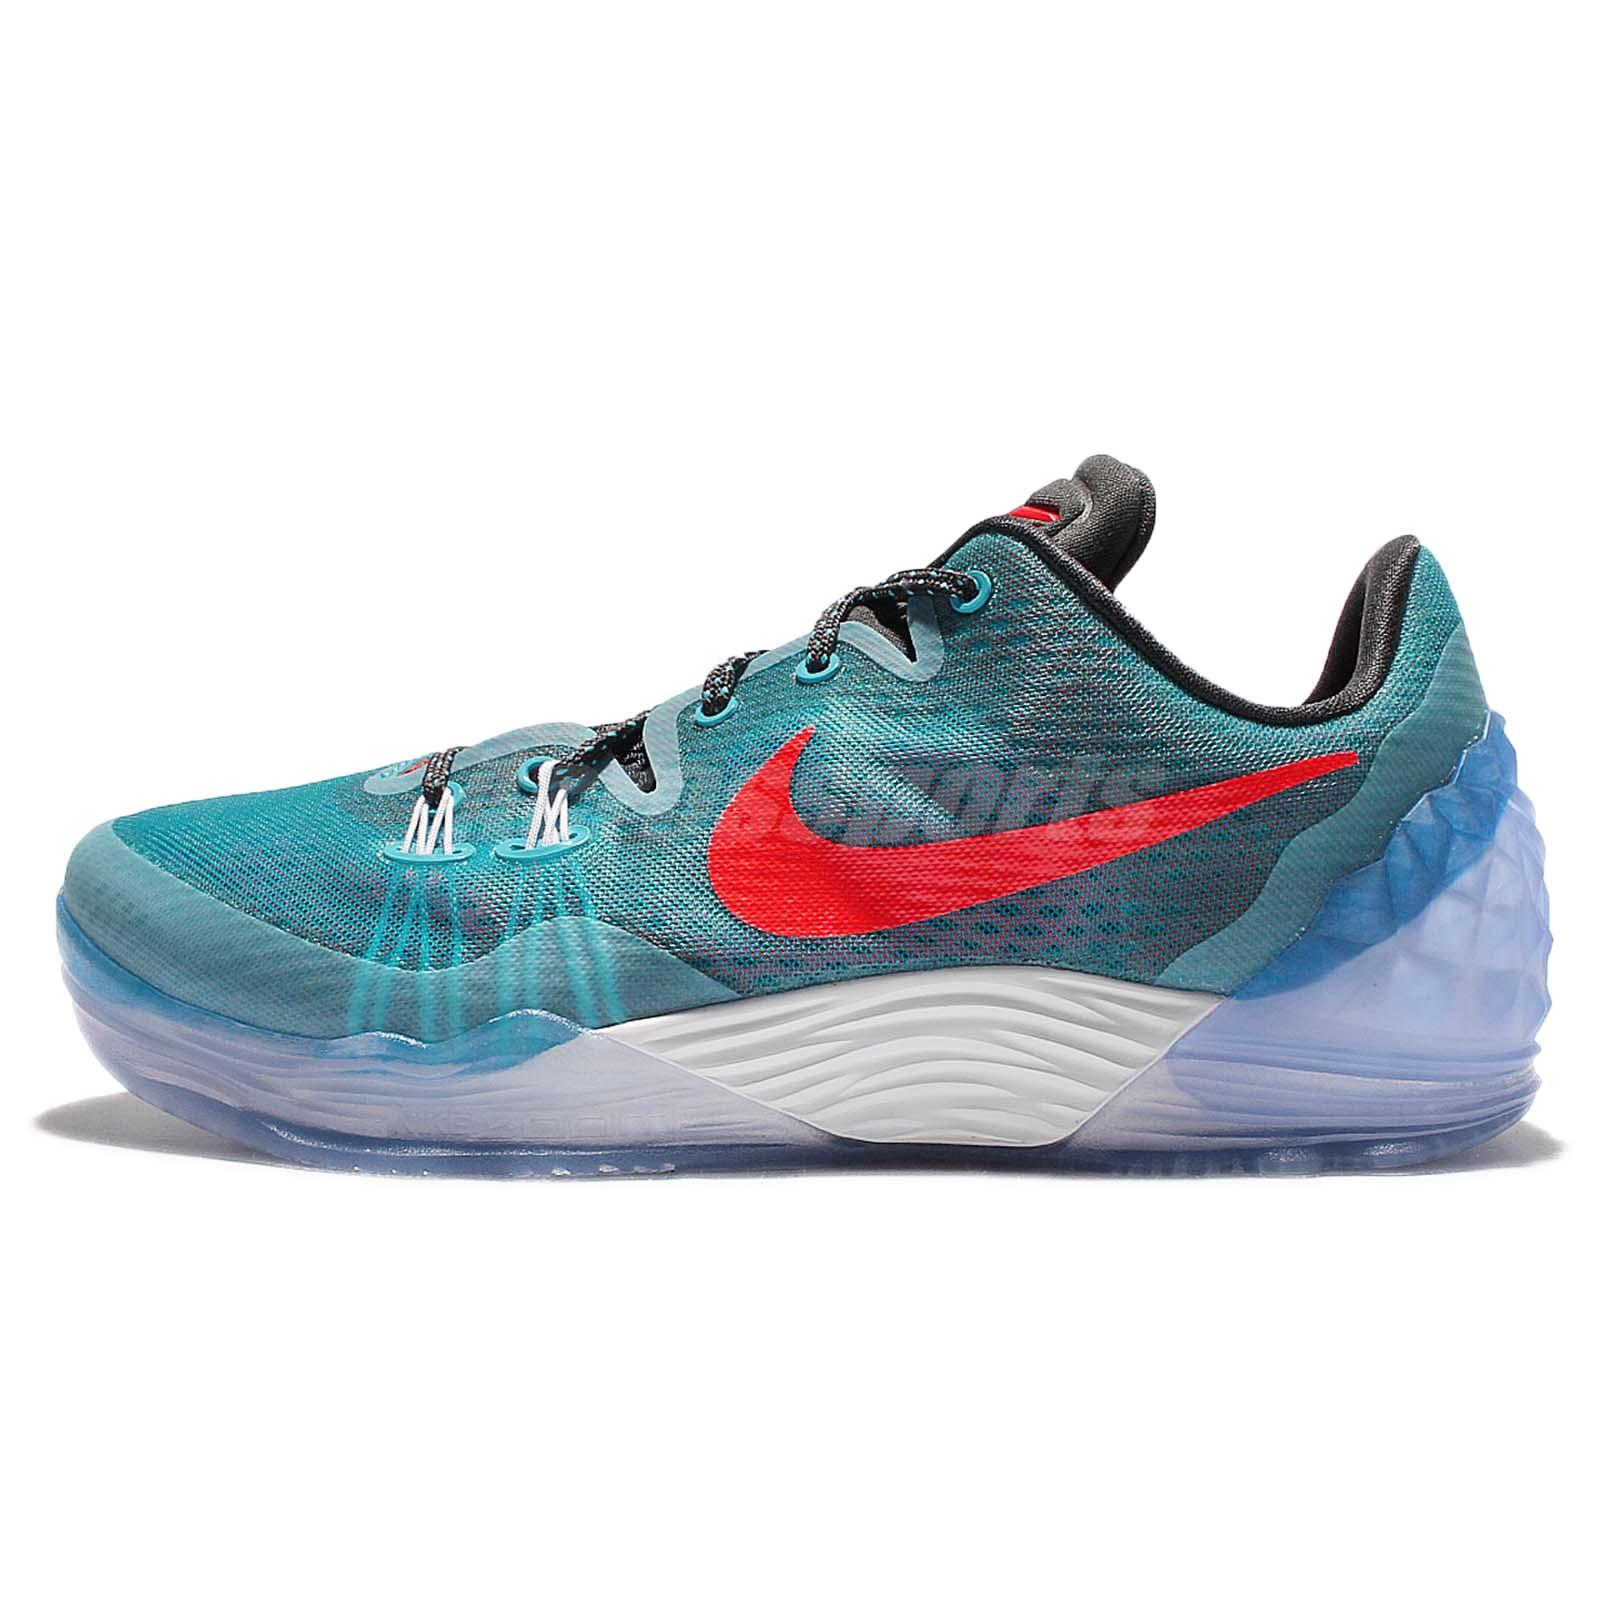 Real Kd 4 For Sale Nike Zoom Kd 4 For Sale  14ab3cb4a85f